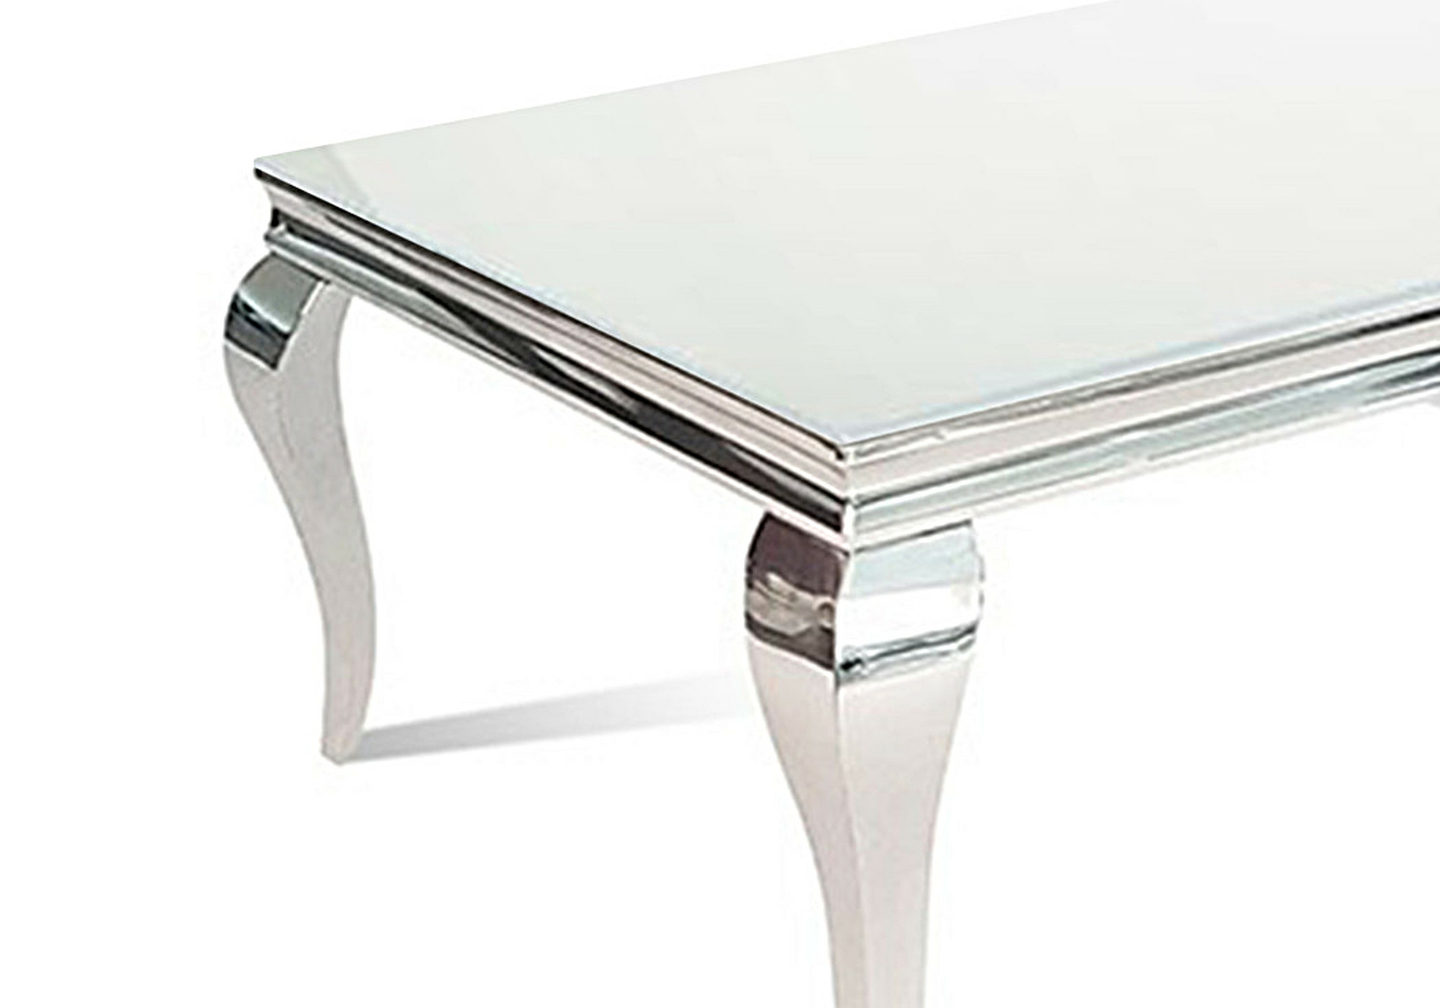 Table basse chromé verre blanc NEO-1.1